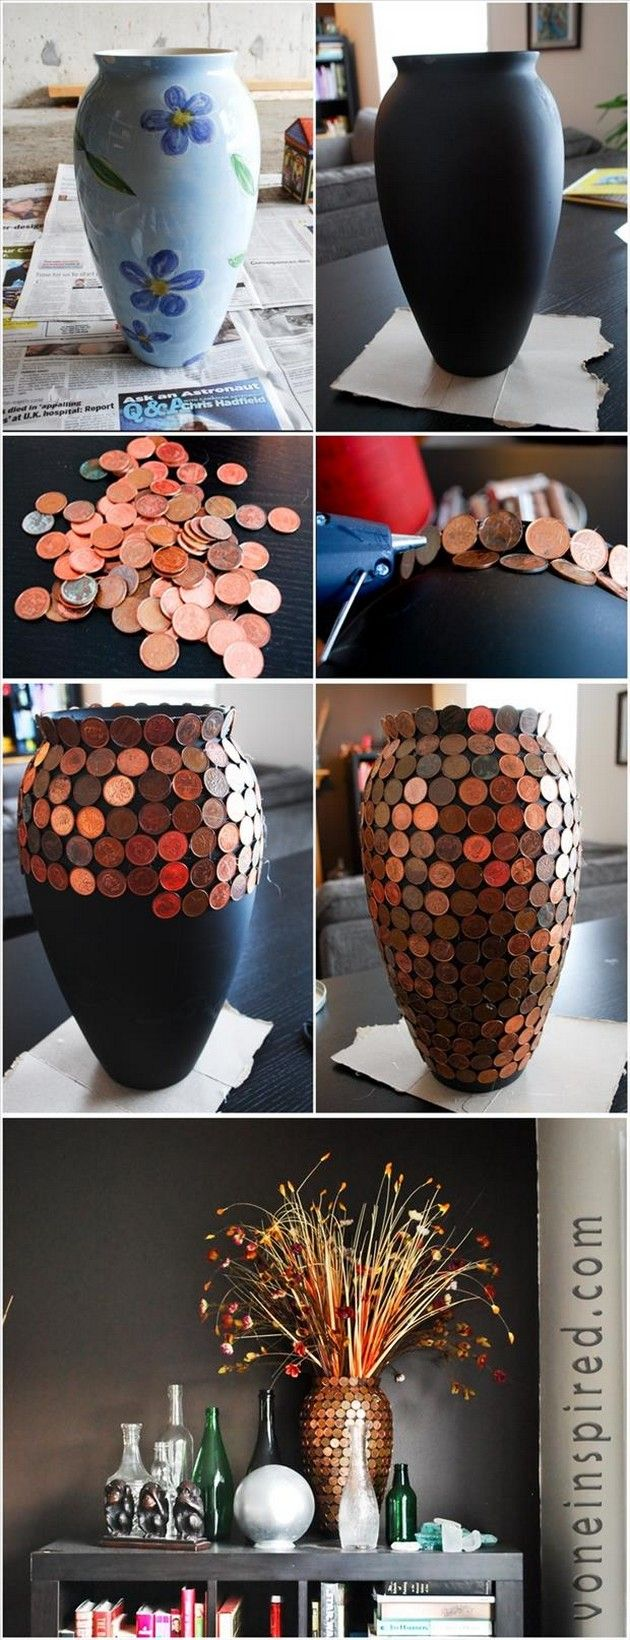 Cool Craft & DIY Ideas - Penny Vase